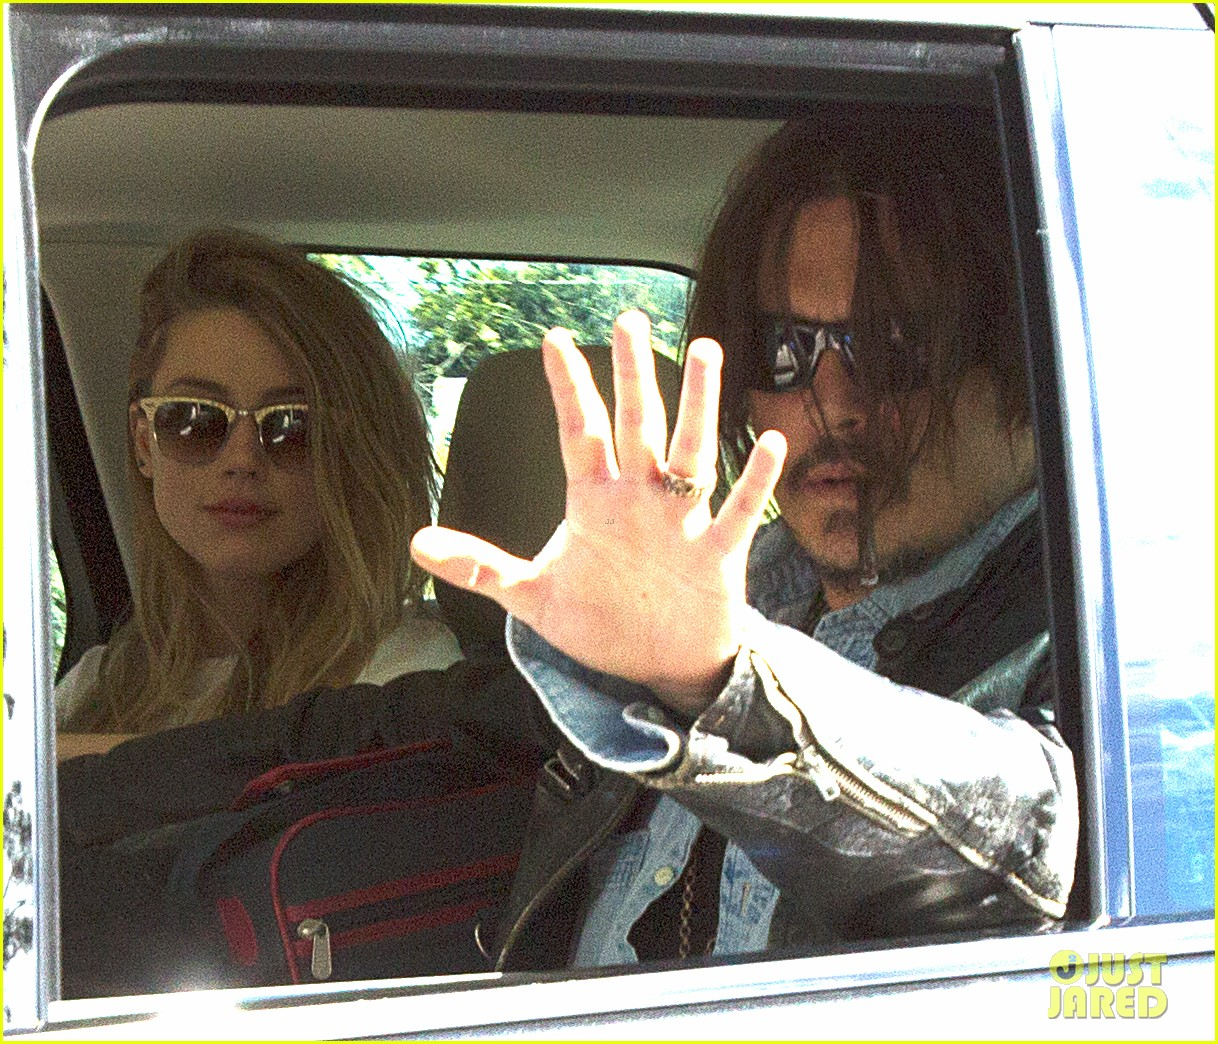 Australia Amber Heard Johnny Depp